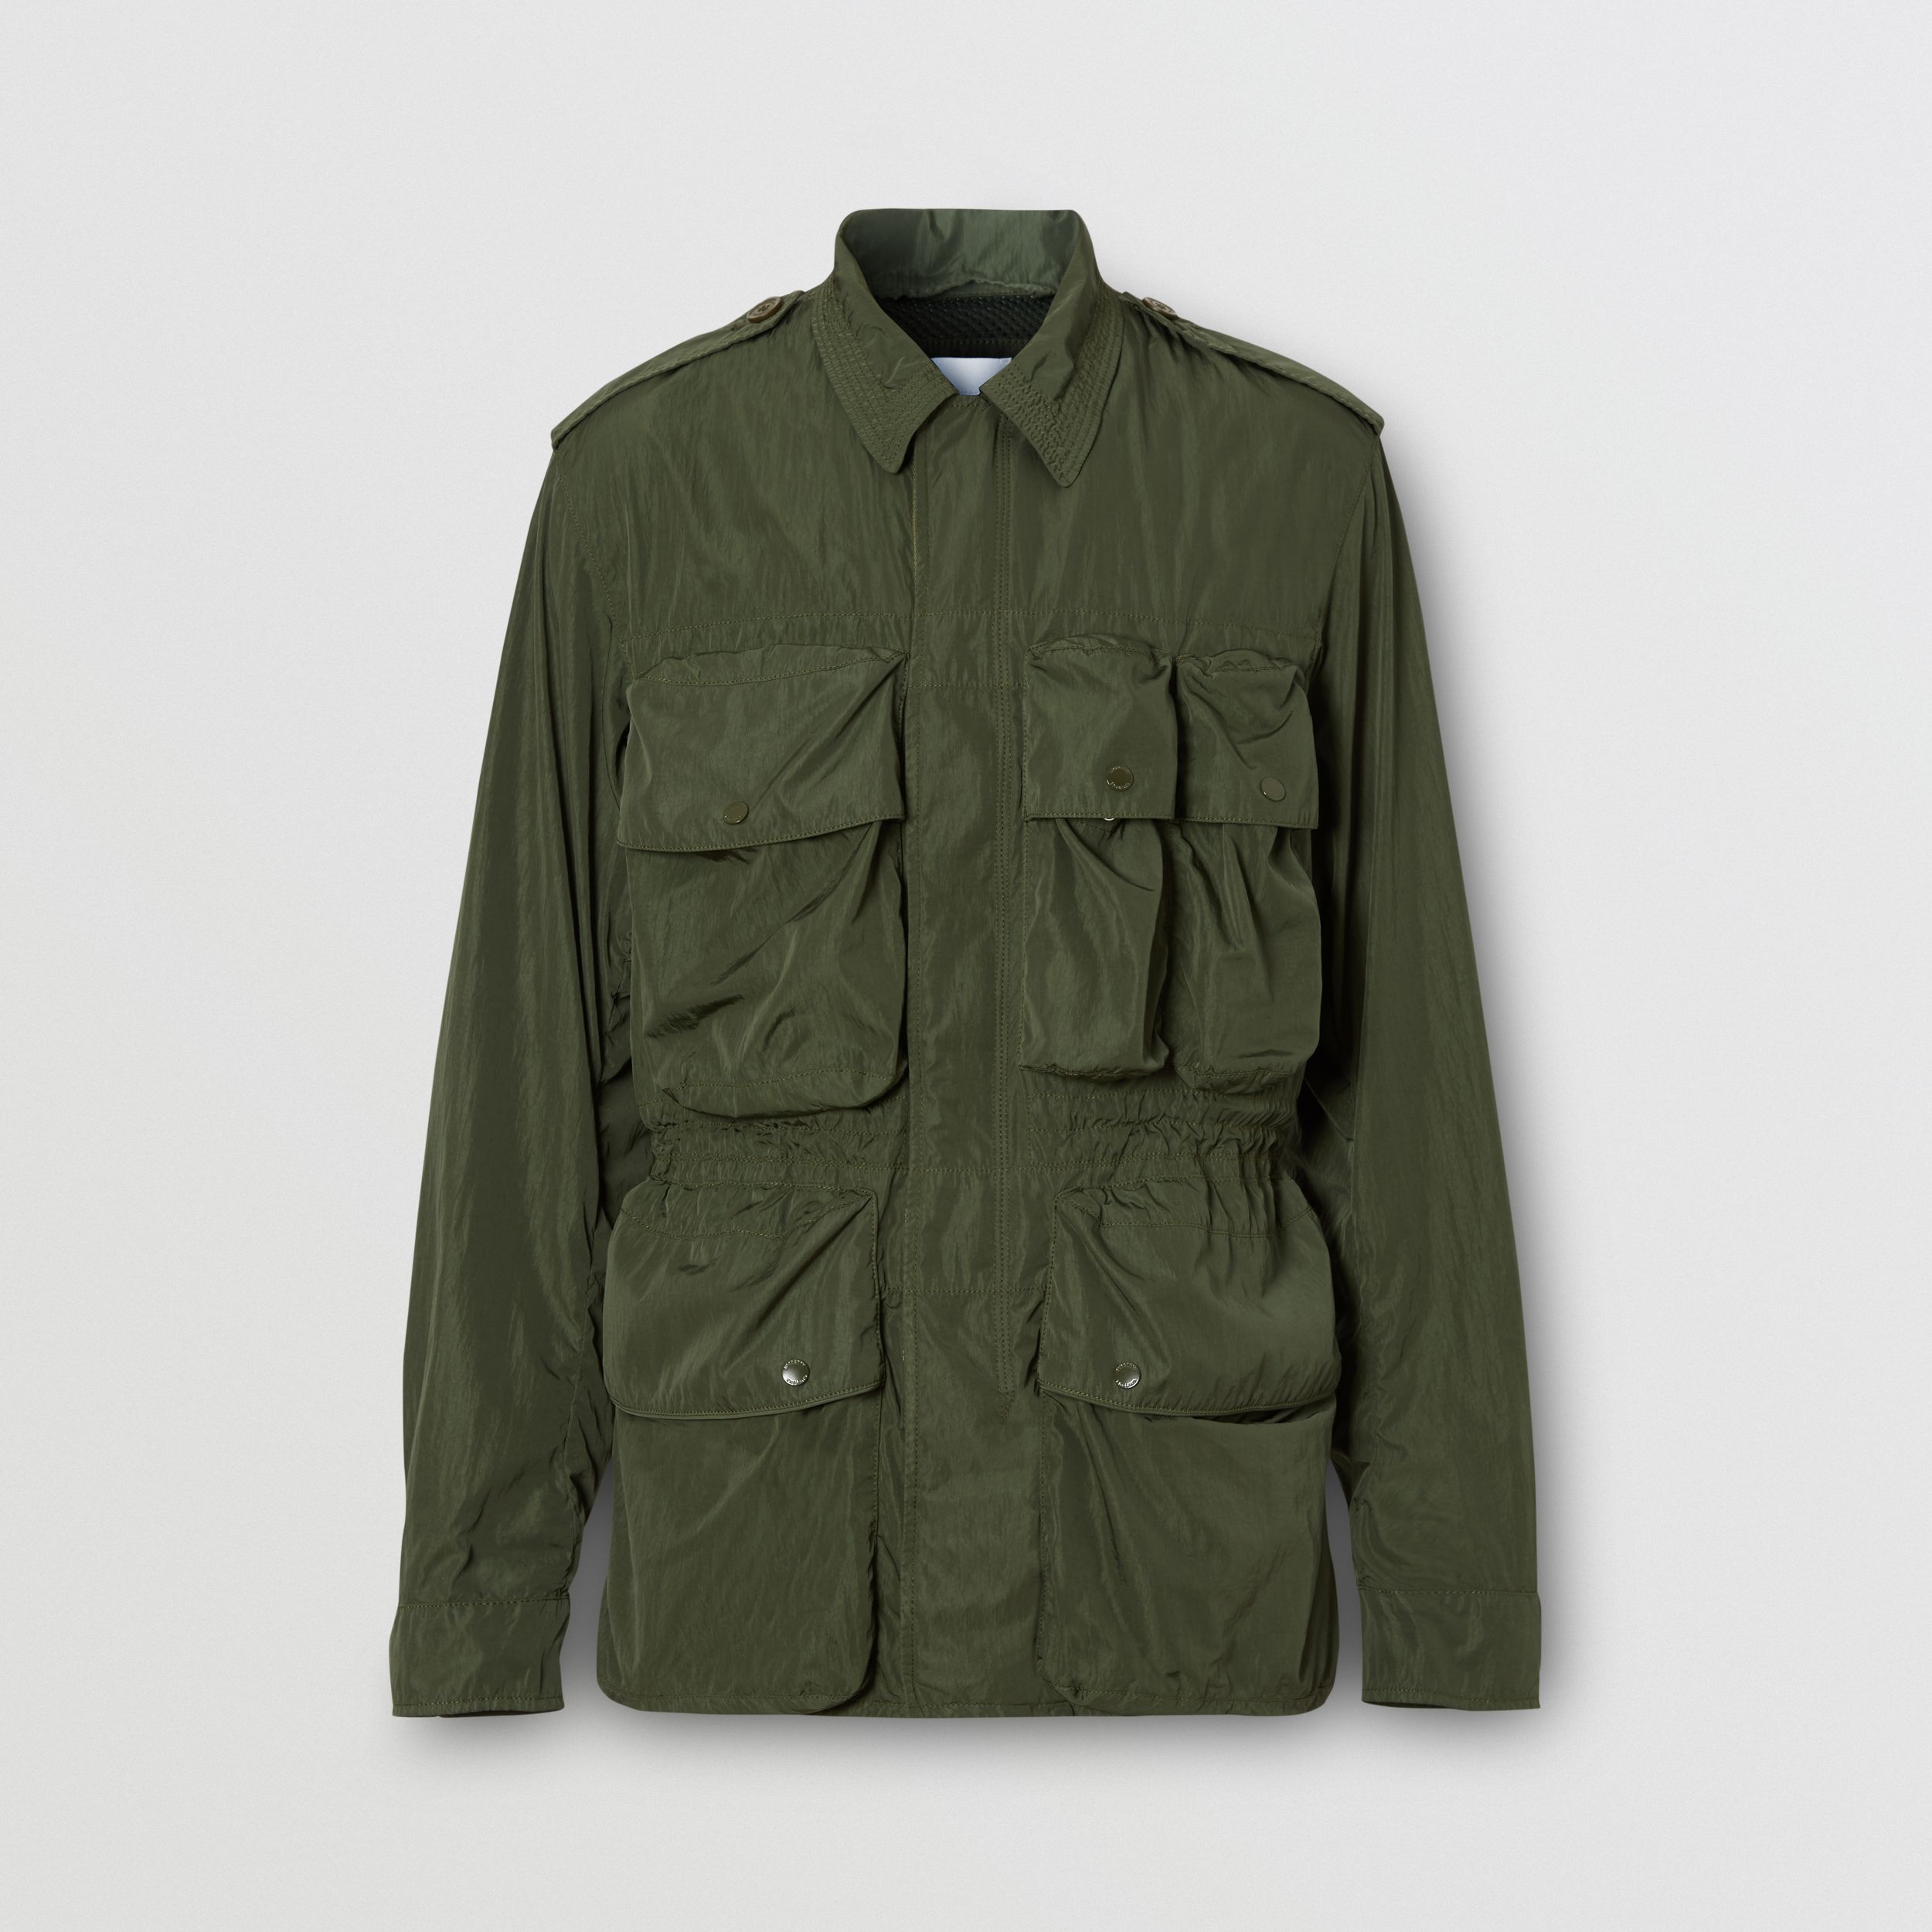 Nylon Field Jacket in Dark Olive Green - Men | Burberry - 4